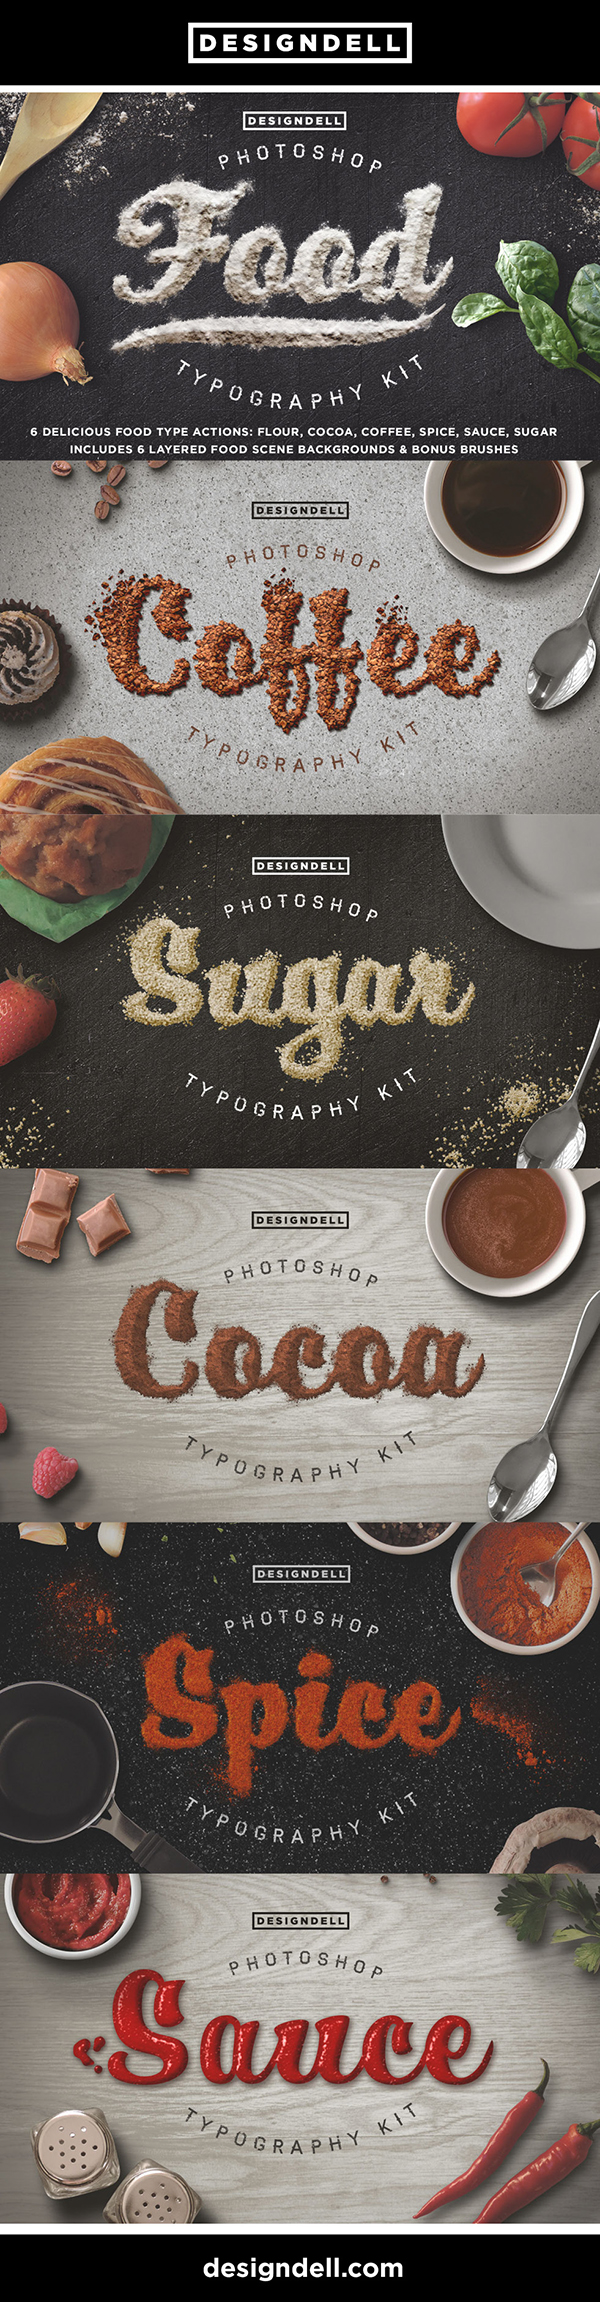 Food Typography Photoshop Effects - Photoshop Actions